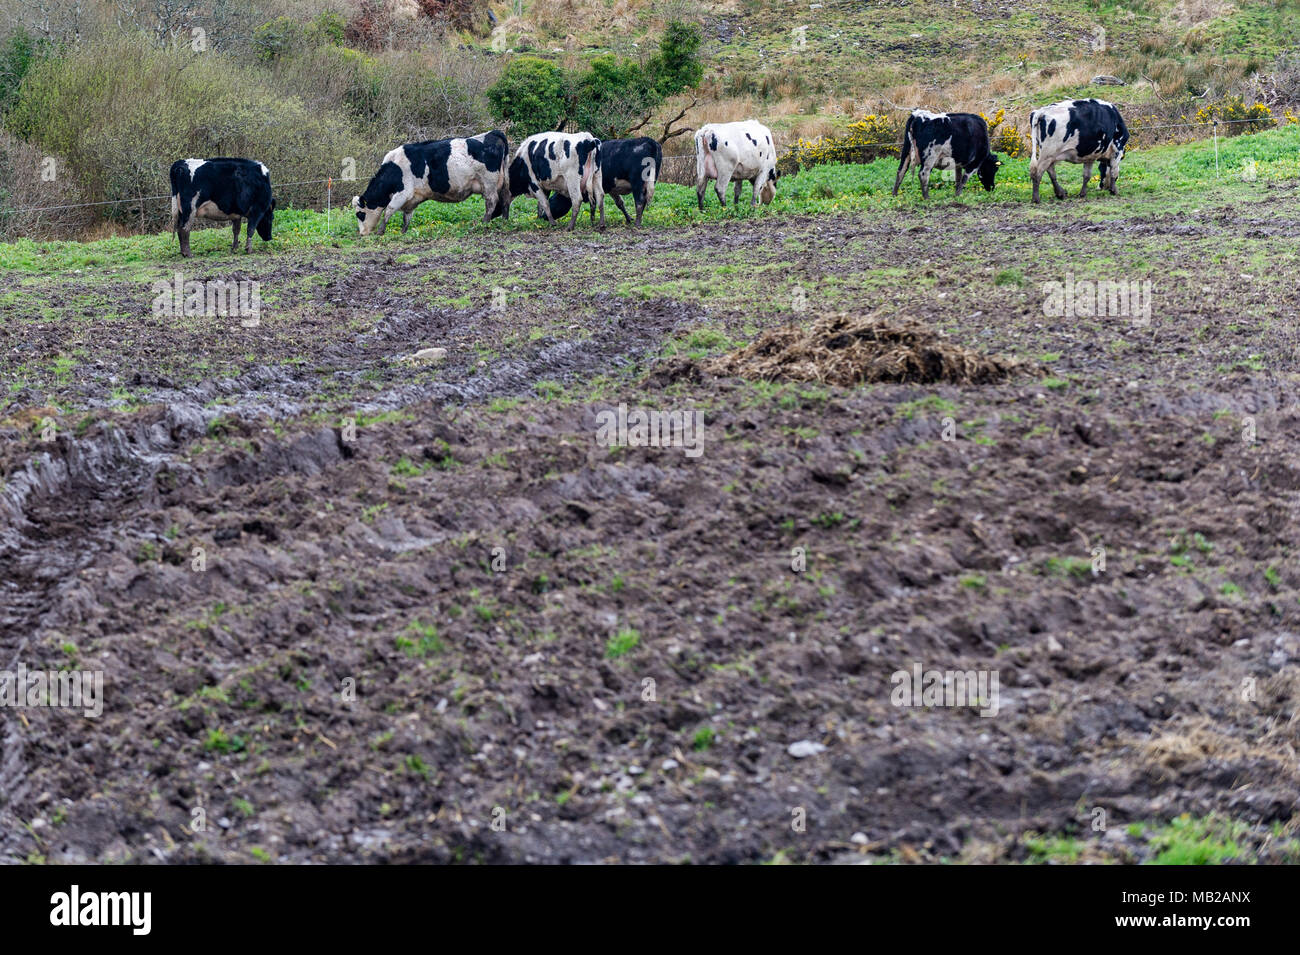 ballydehob-ireland-6th-apr-2018-a-herd-of-dairy-cows-attempt-to-eat-what-little-grass-there-is-left-in-a-field-of-mud-due-to-the-ongoing-fodder-crisis-in-ireland-the-poor-weather-has-led-to-no-grass-growth-with-fodder-having-to-be-imported-from-the-uk-to-help-desperate-farmers-credit-andy-gibsonalamy-live-news-MB2ANX.jpg